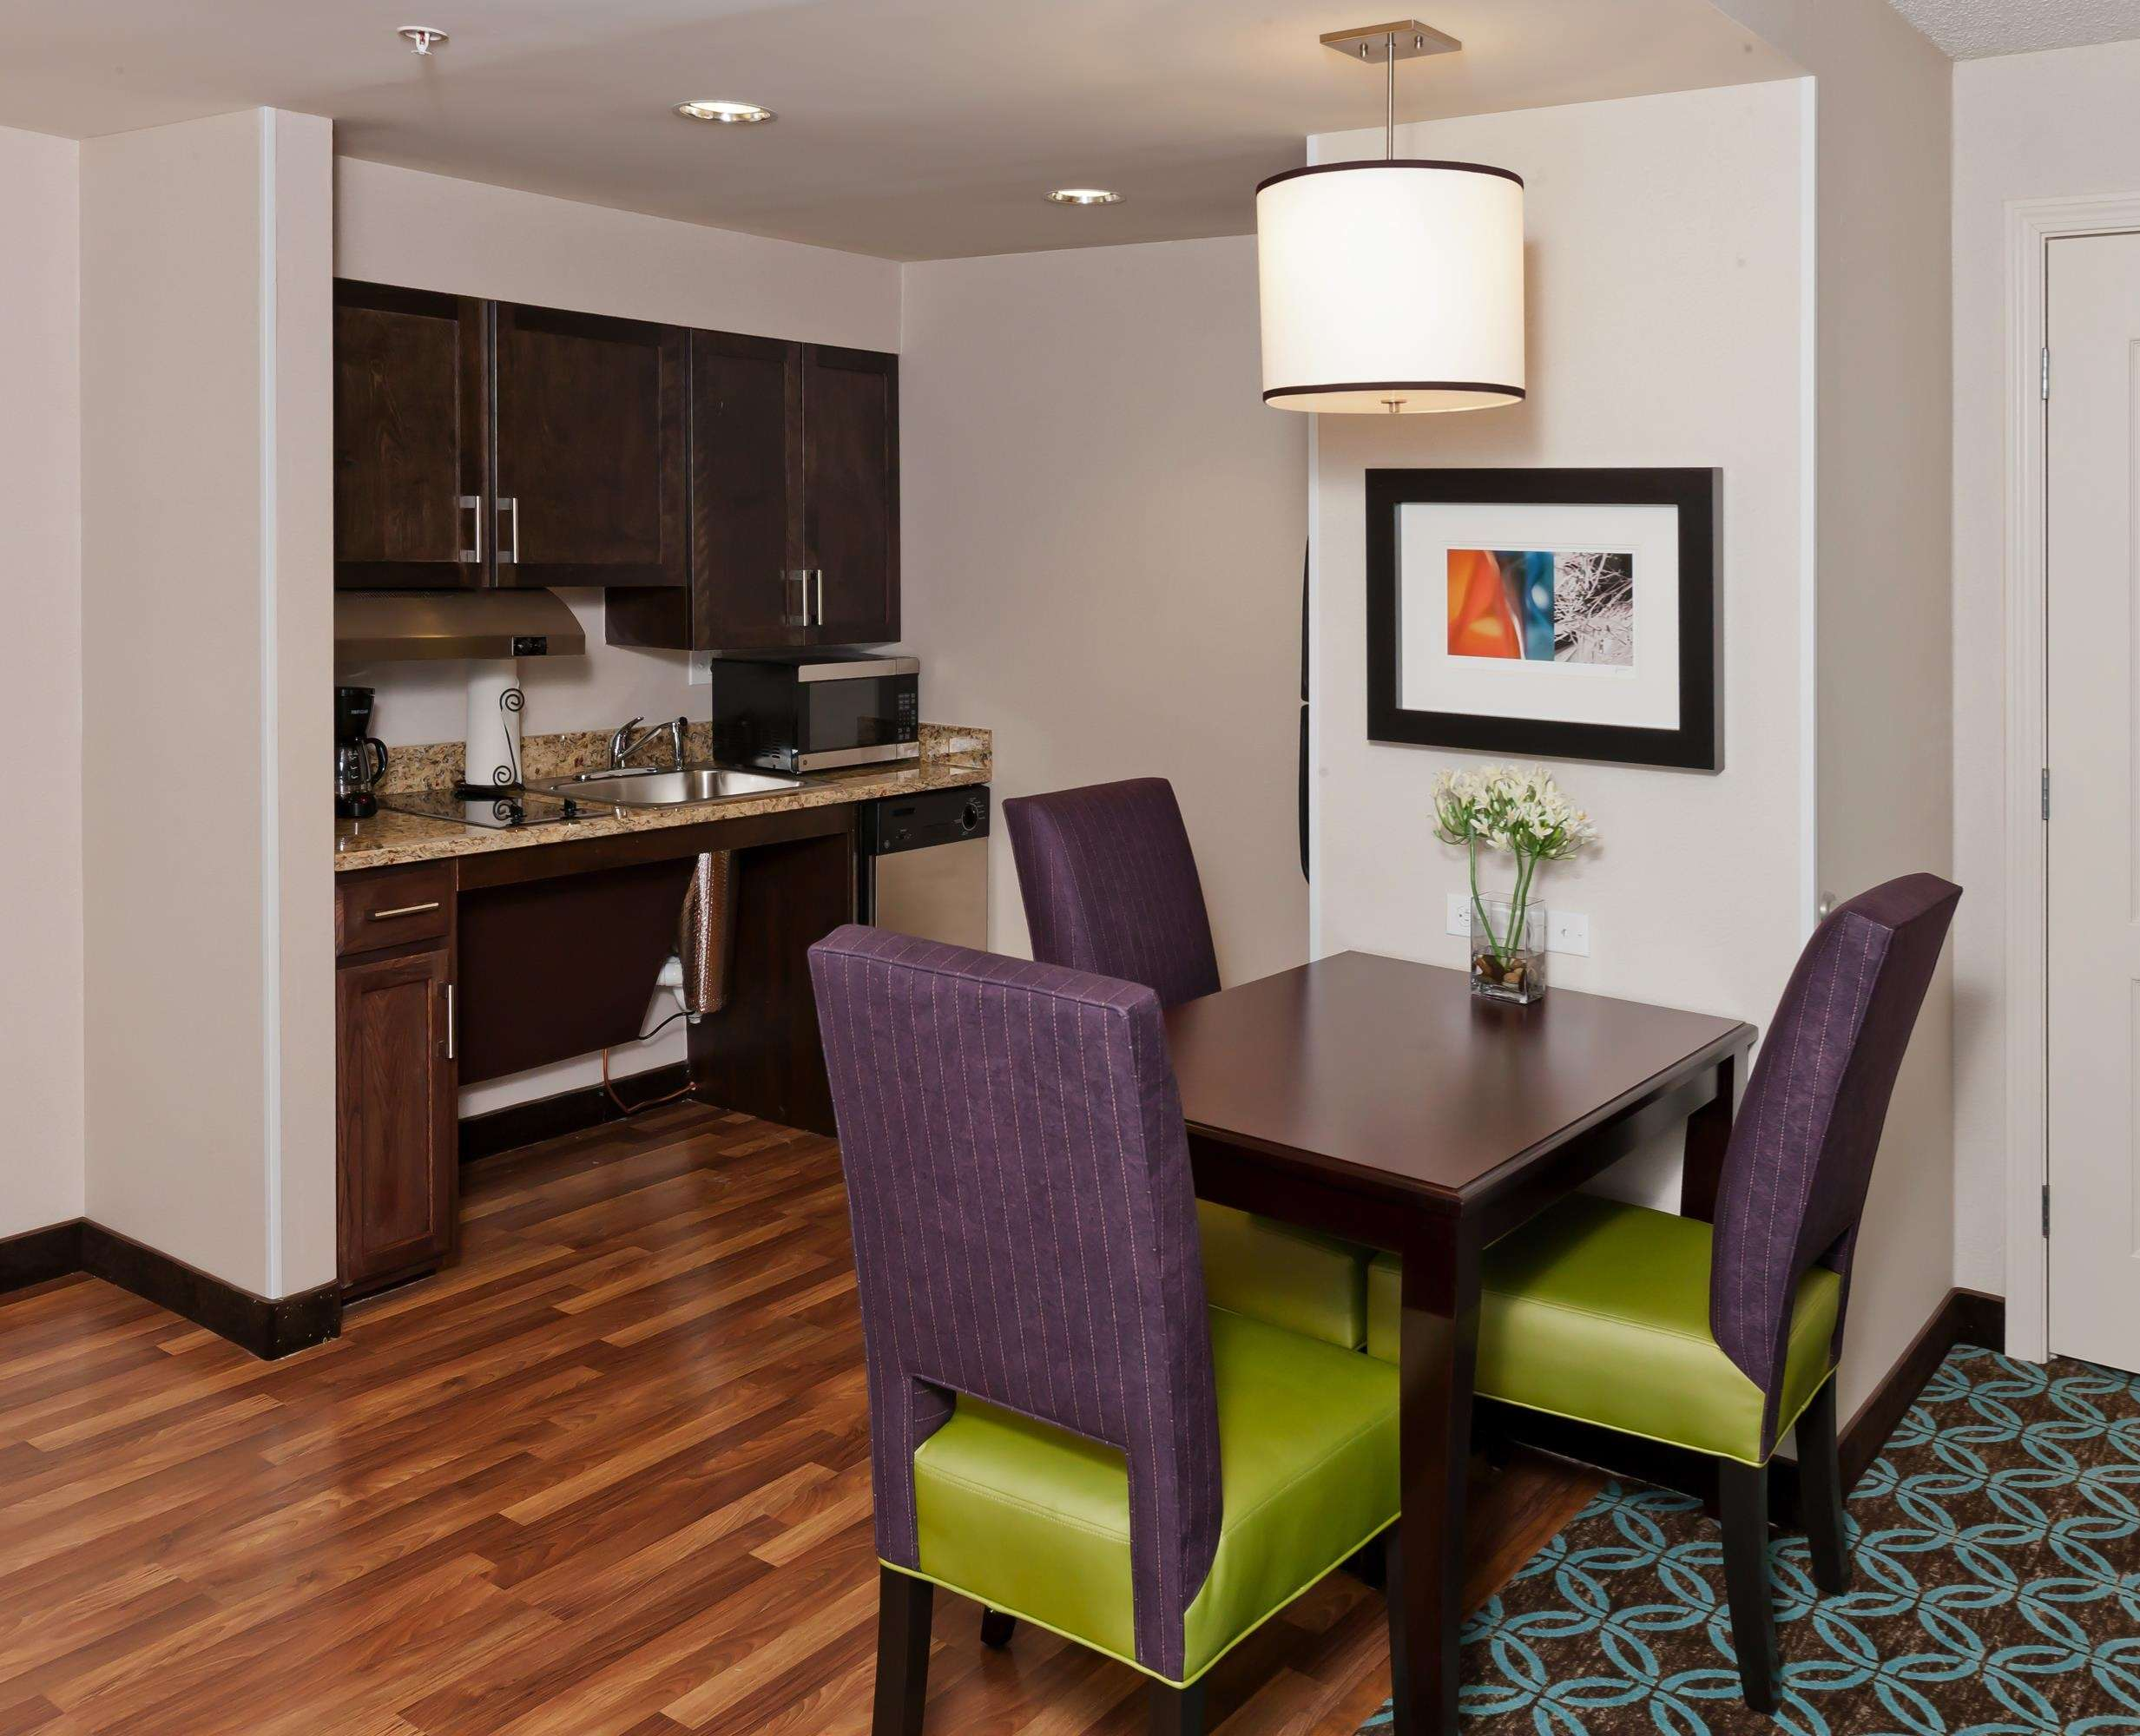 Homewood Suites by Hilton Boston/Canton, MA image 22